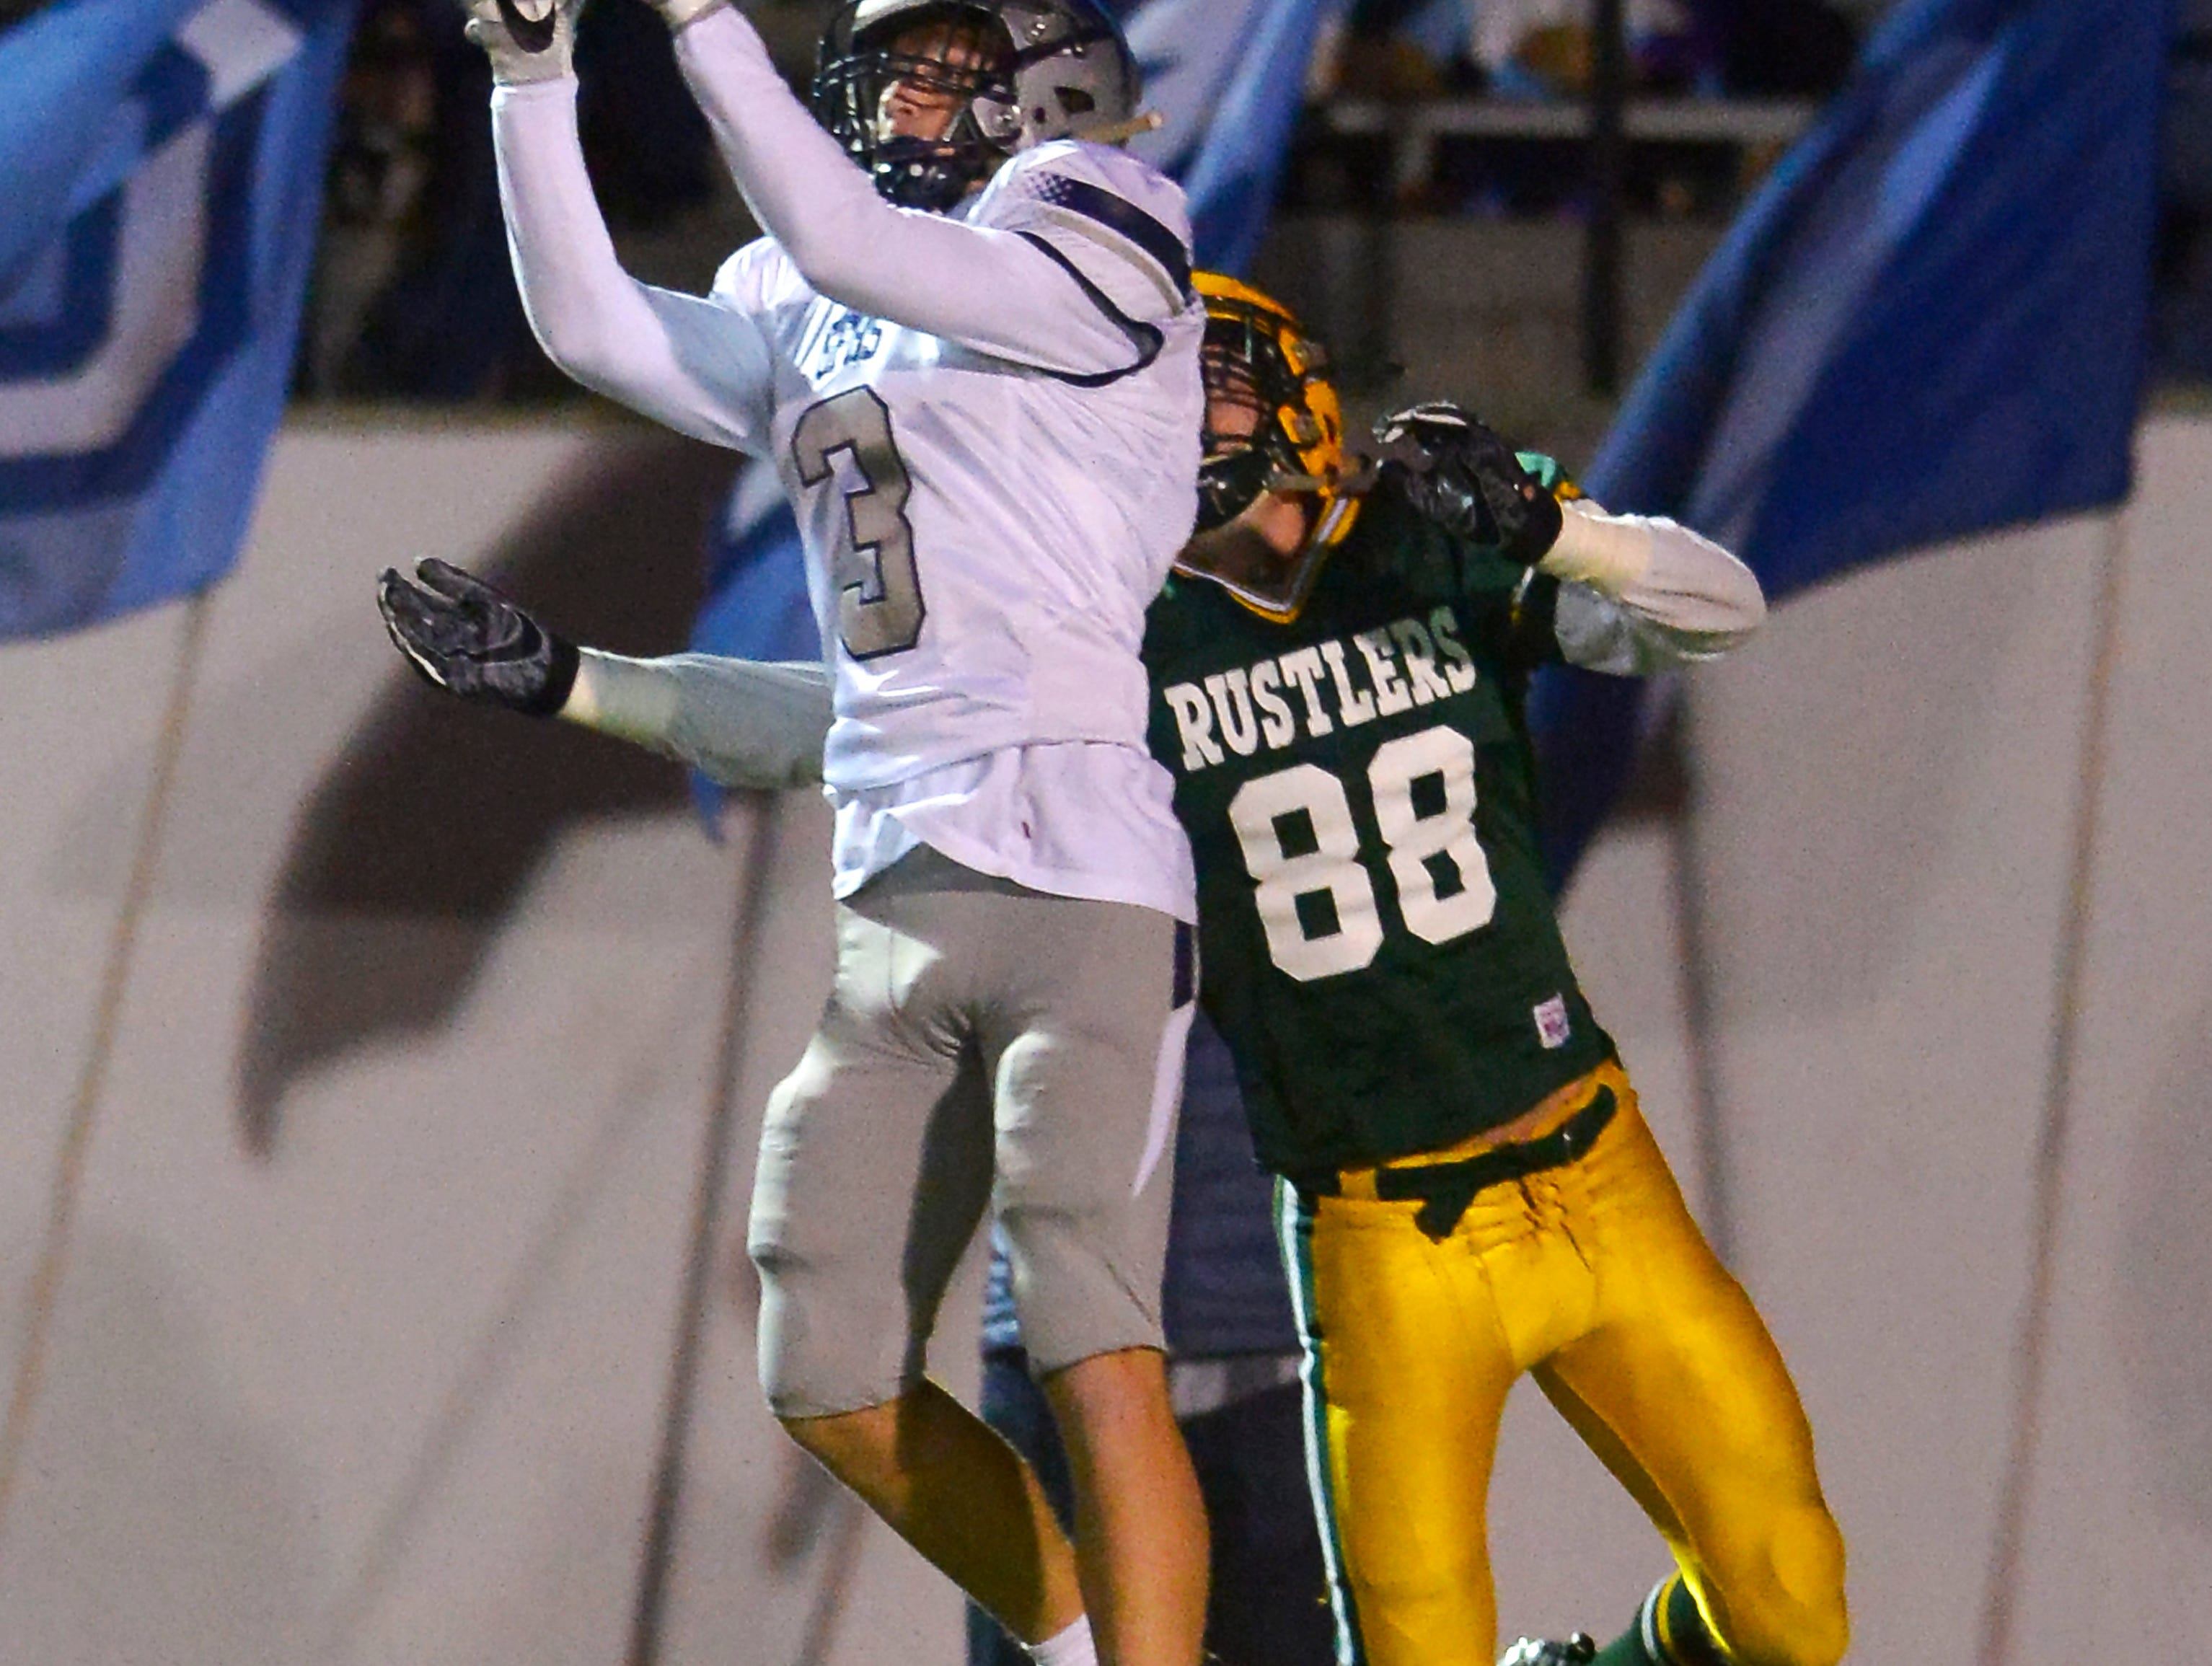 Great Falls High's Keegan Bistadeau makes an interception during the crosstown football game between Great Falls High and CMR on Friday night at Memorial Stadium.